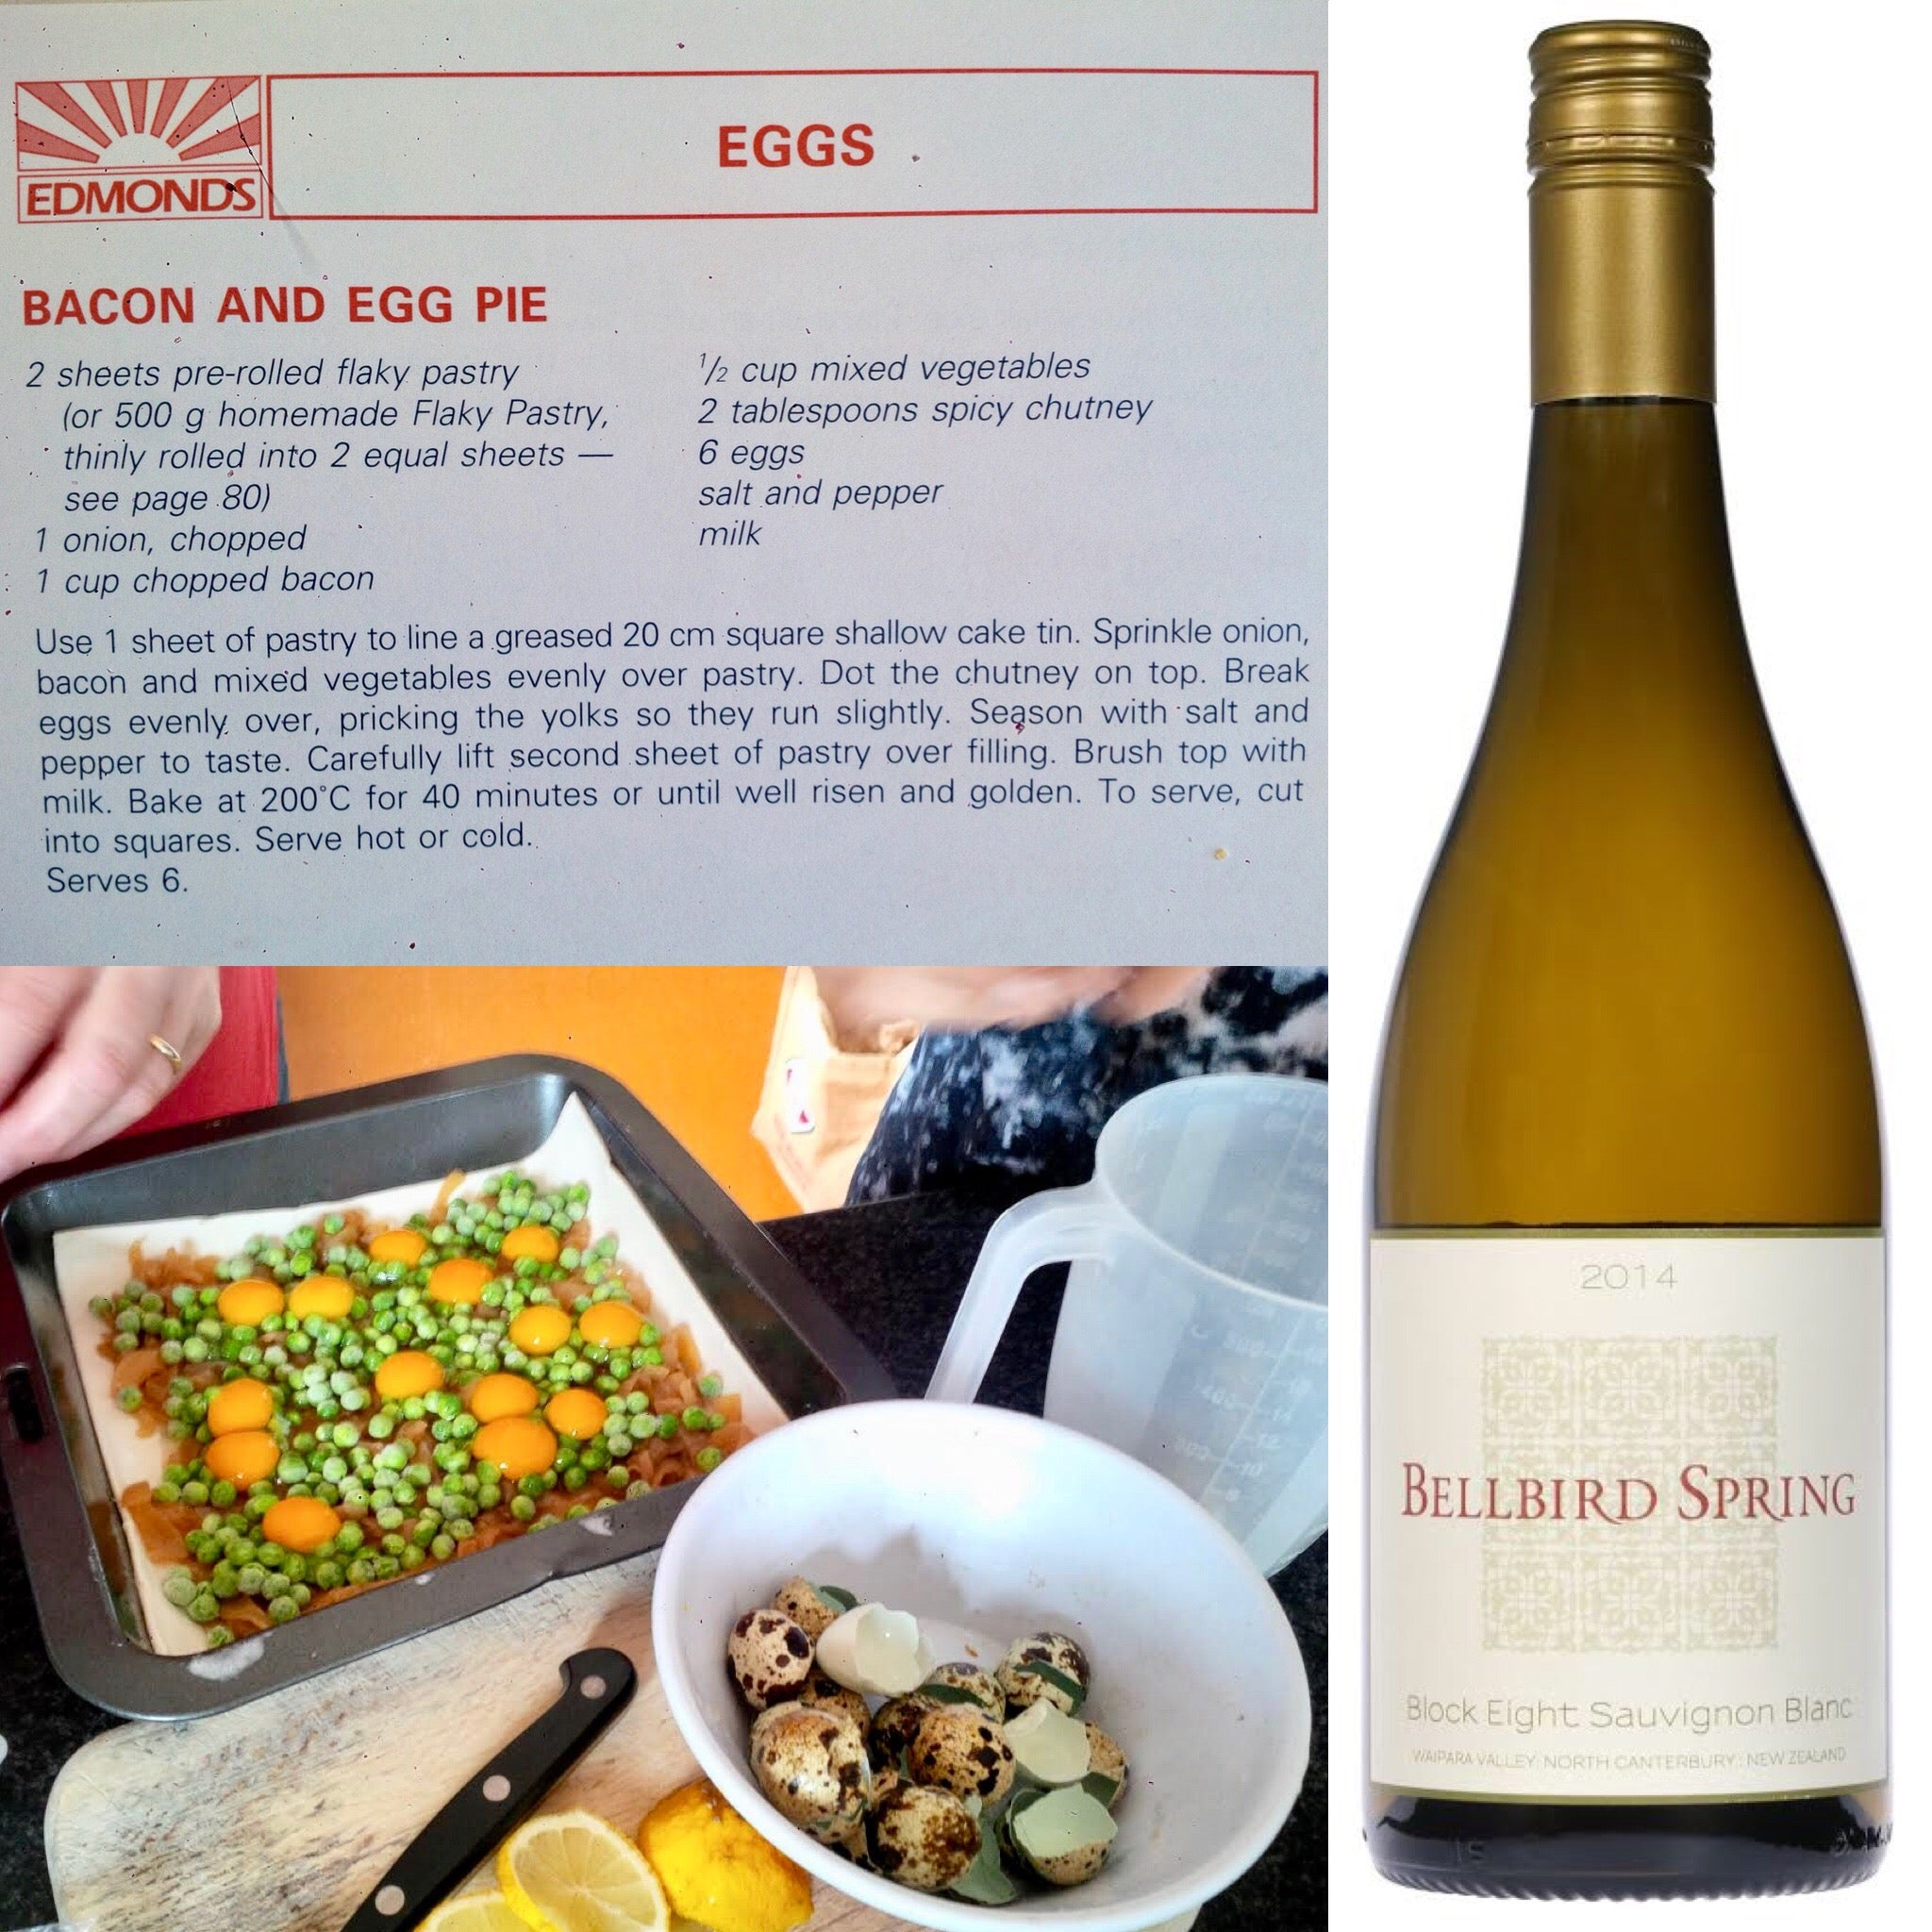 Food and Wine Match - Block Eight Sauvignon Blanc and Bacon and Quail Egg Pie